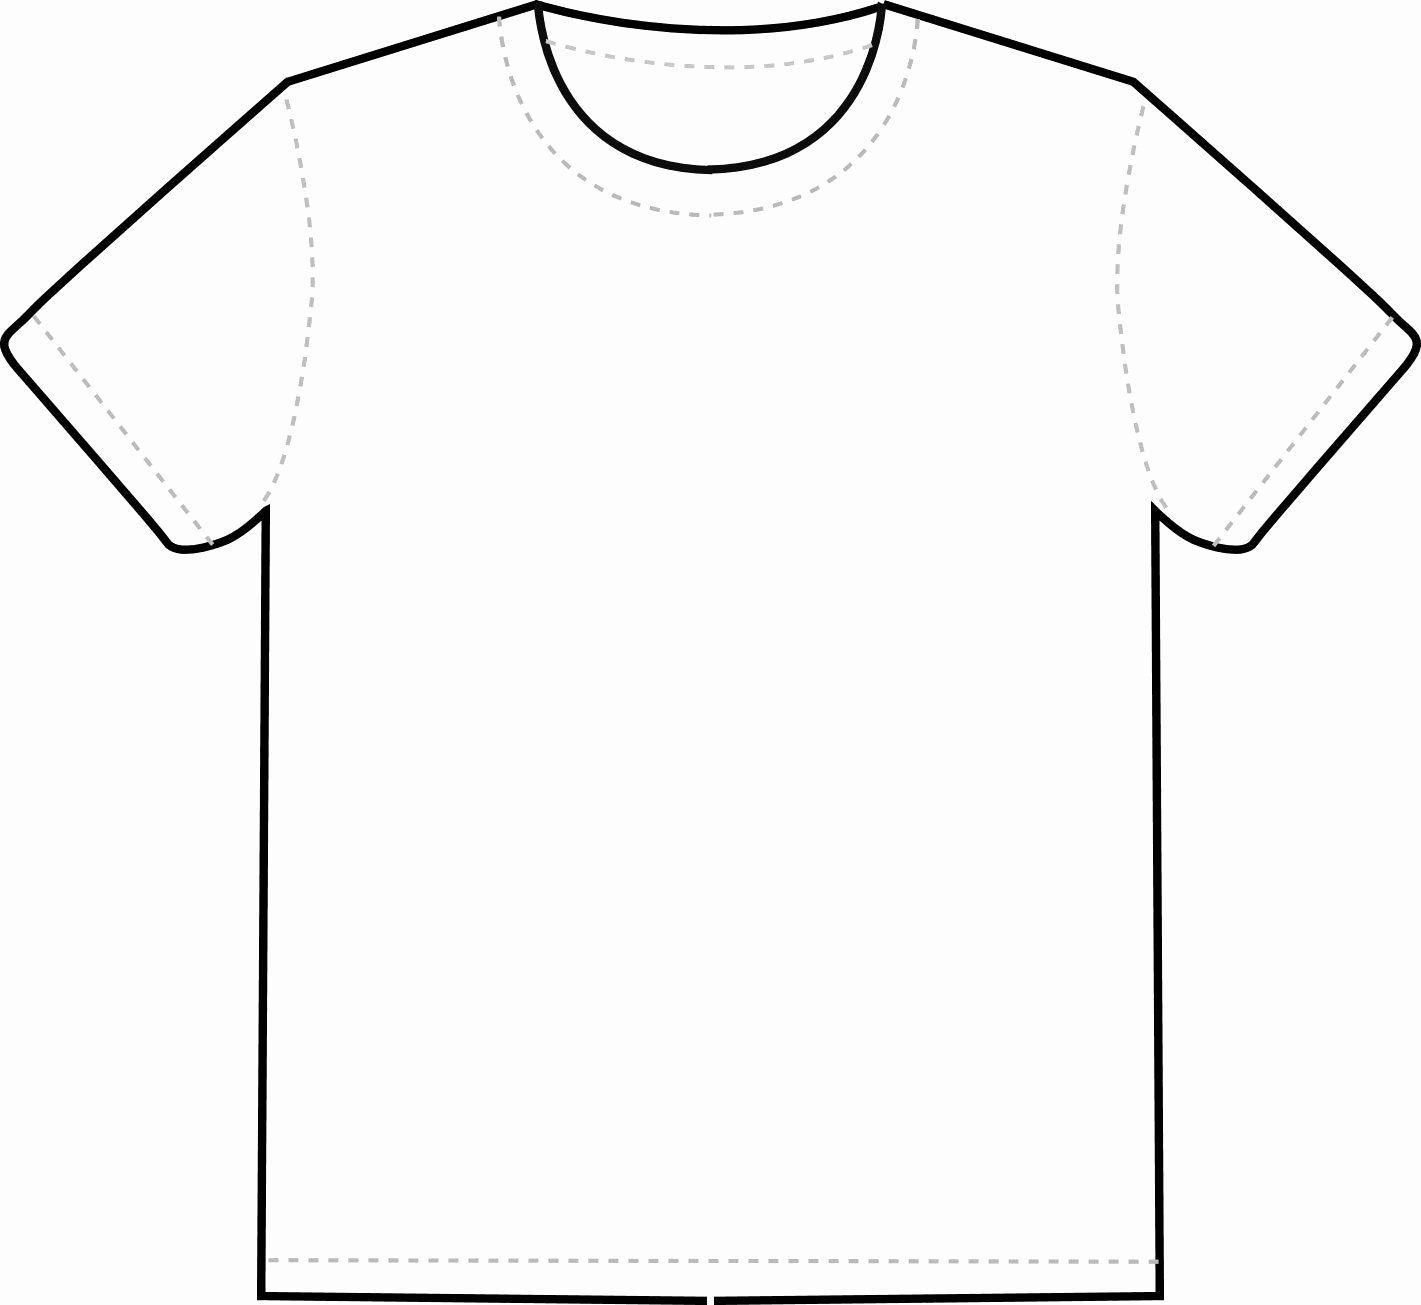 T Shirt Coloring Page Awesome Cute Baby Tigger Coloring Pages Free Coloring Library Teespring In 2019 T Shirt Design Template Shirt Template Tshirt Template